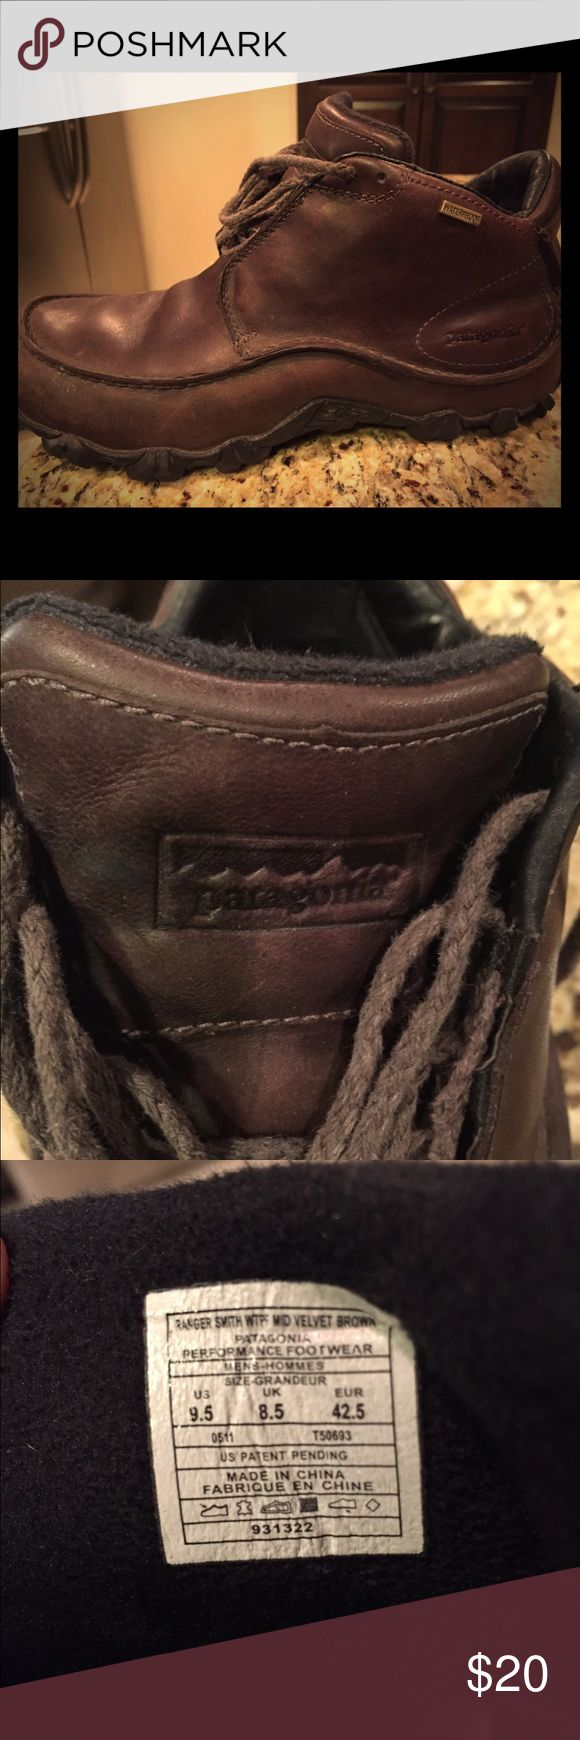 Men's Waterproof Patagonia Hikers 9.5 Men's Brown leather gently used Sz 9.5. Great shoes just got a new pair. Patagonia Shoes Athletic Shoes